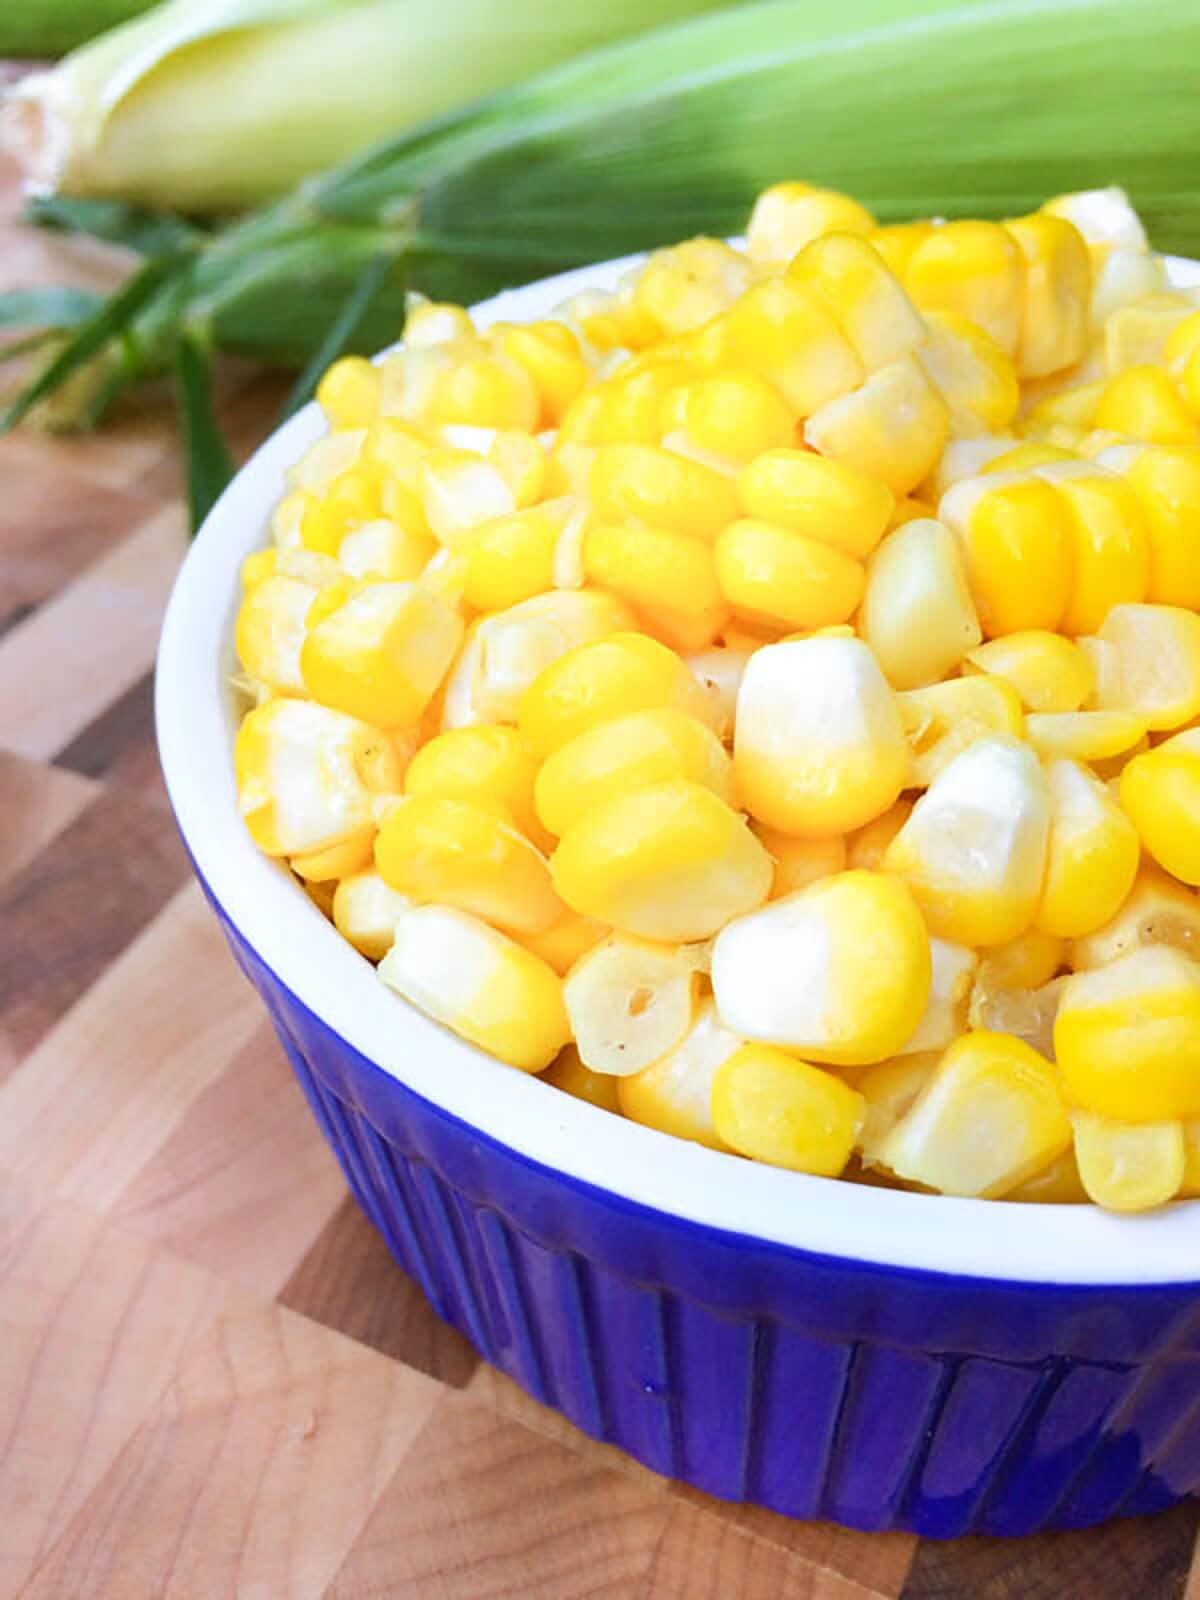 Health benefits and side effects of eating corn (Zea mays)